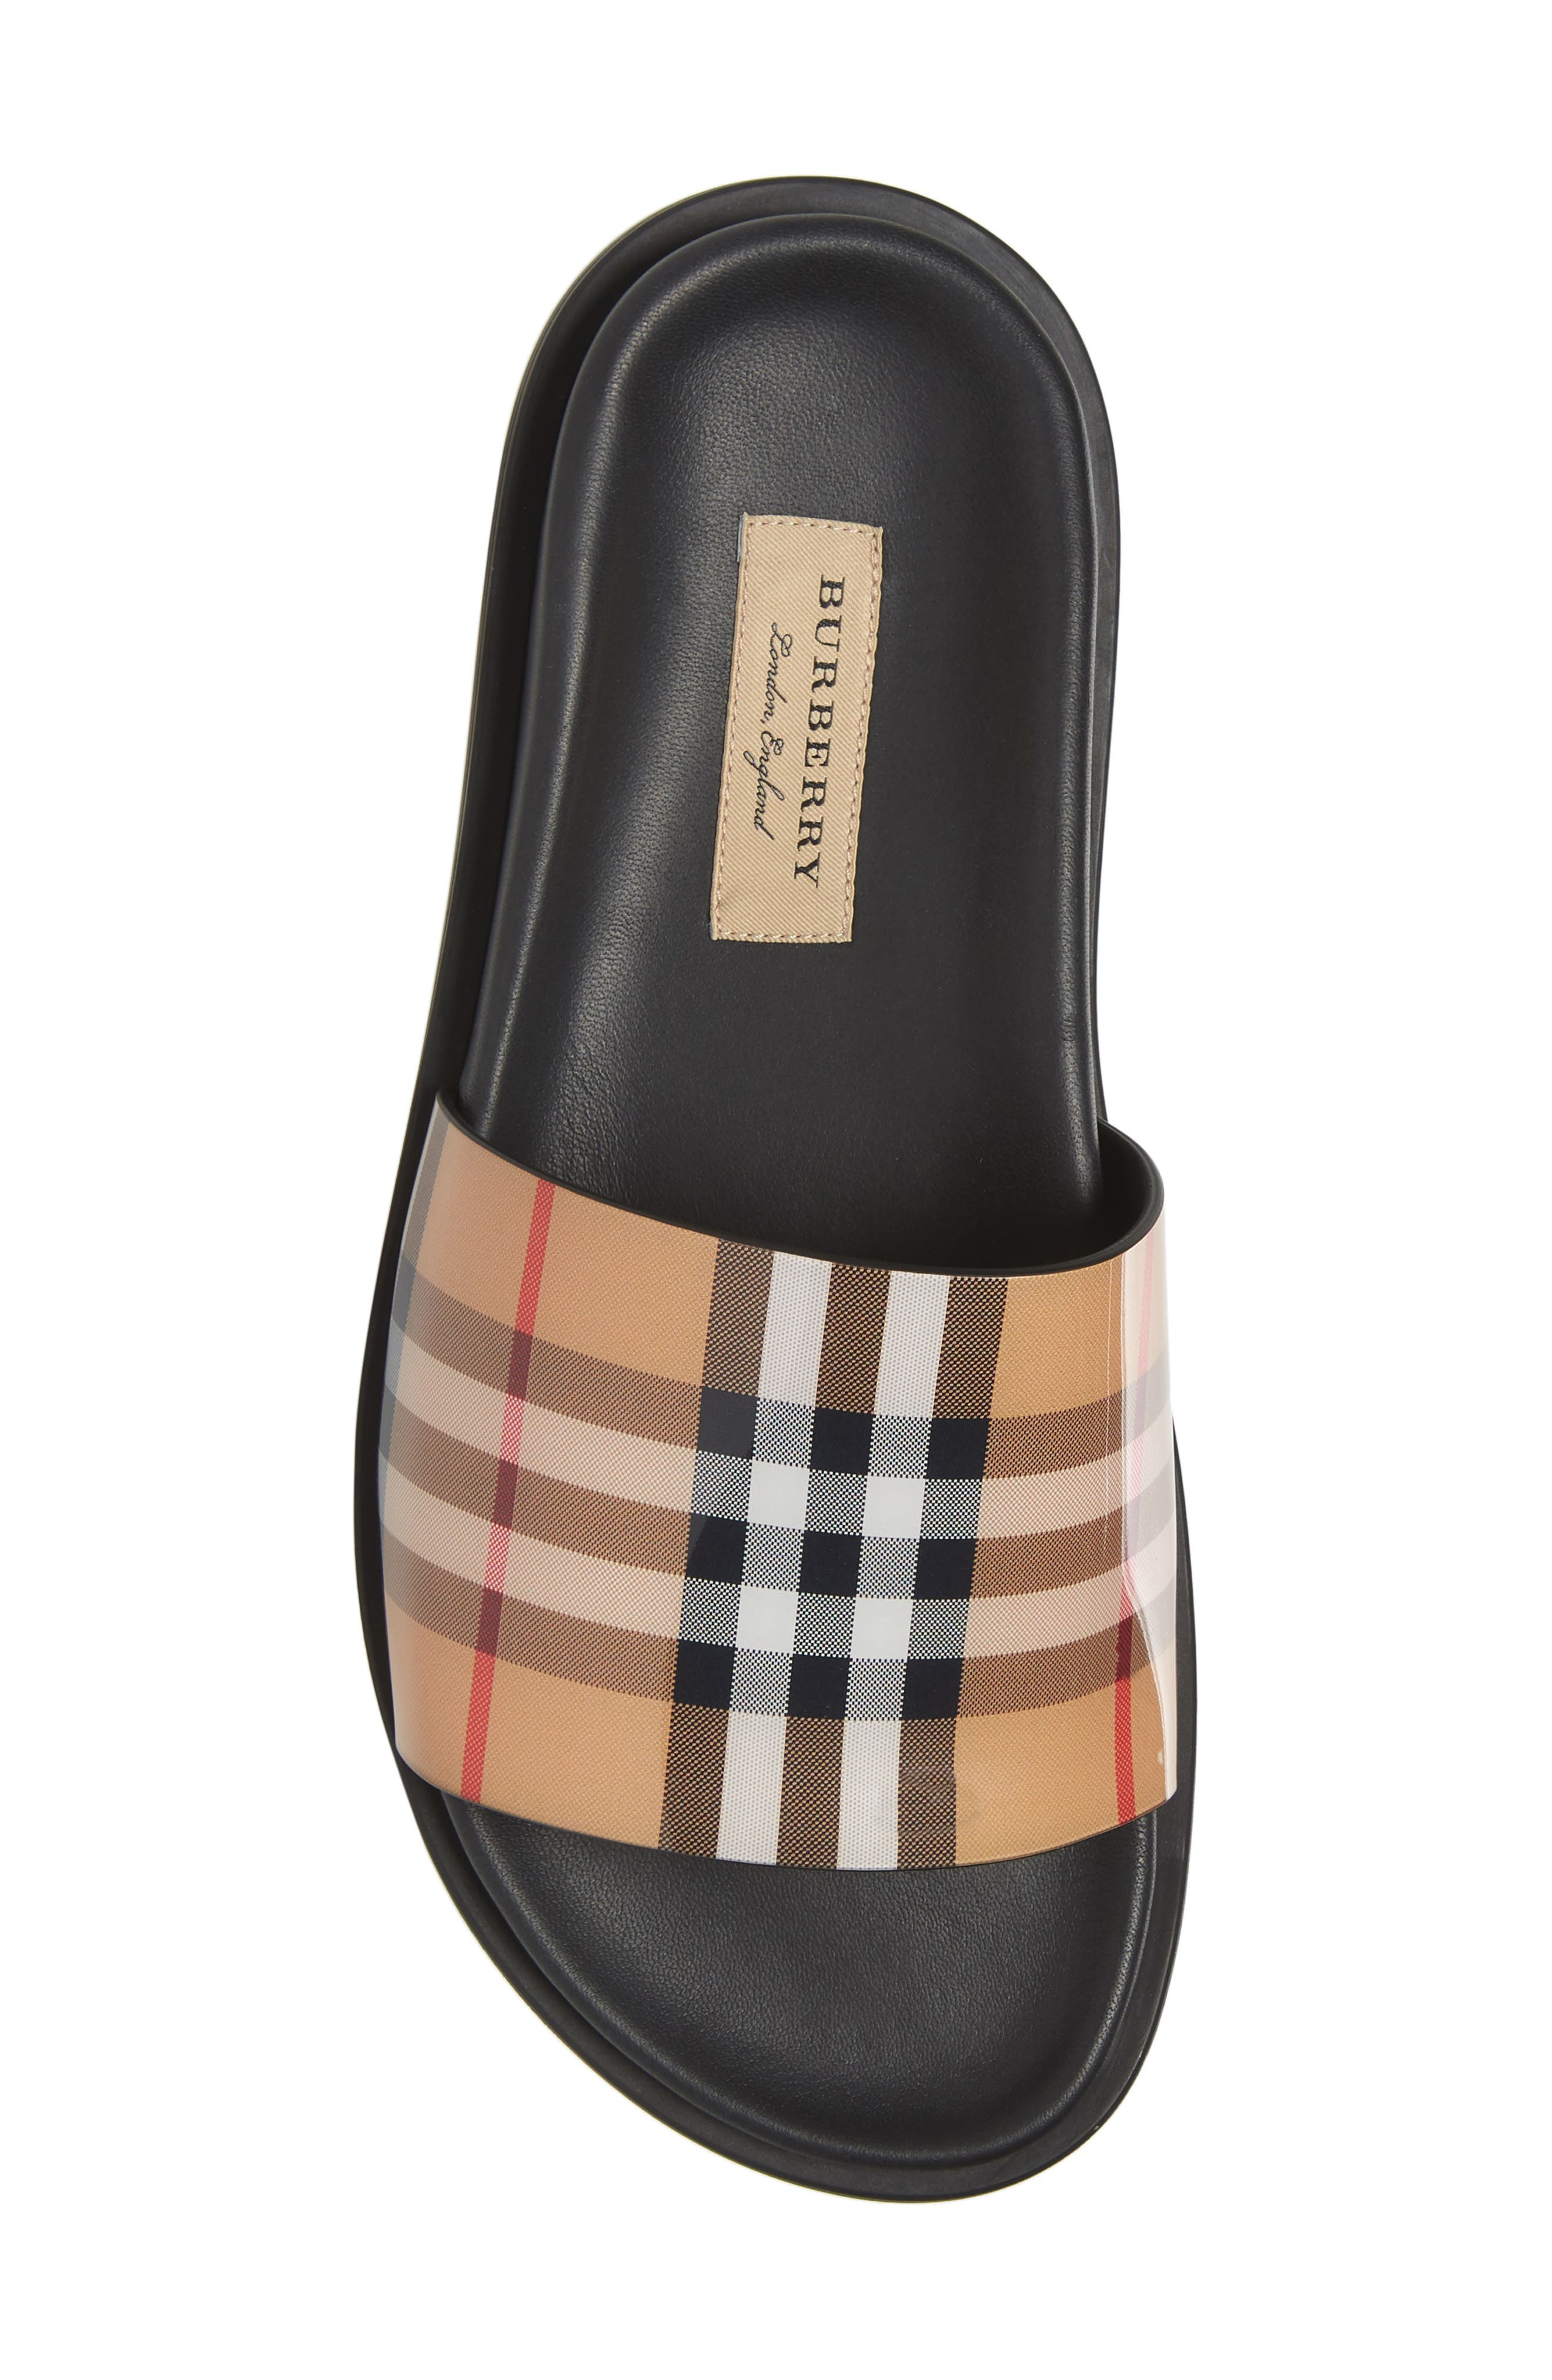 BURBERRY,                             Vintage Check Slide Sandal,                             Alternate thumbnail 6, color,                             250